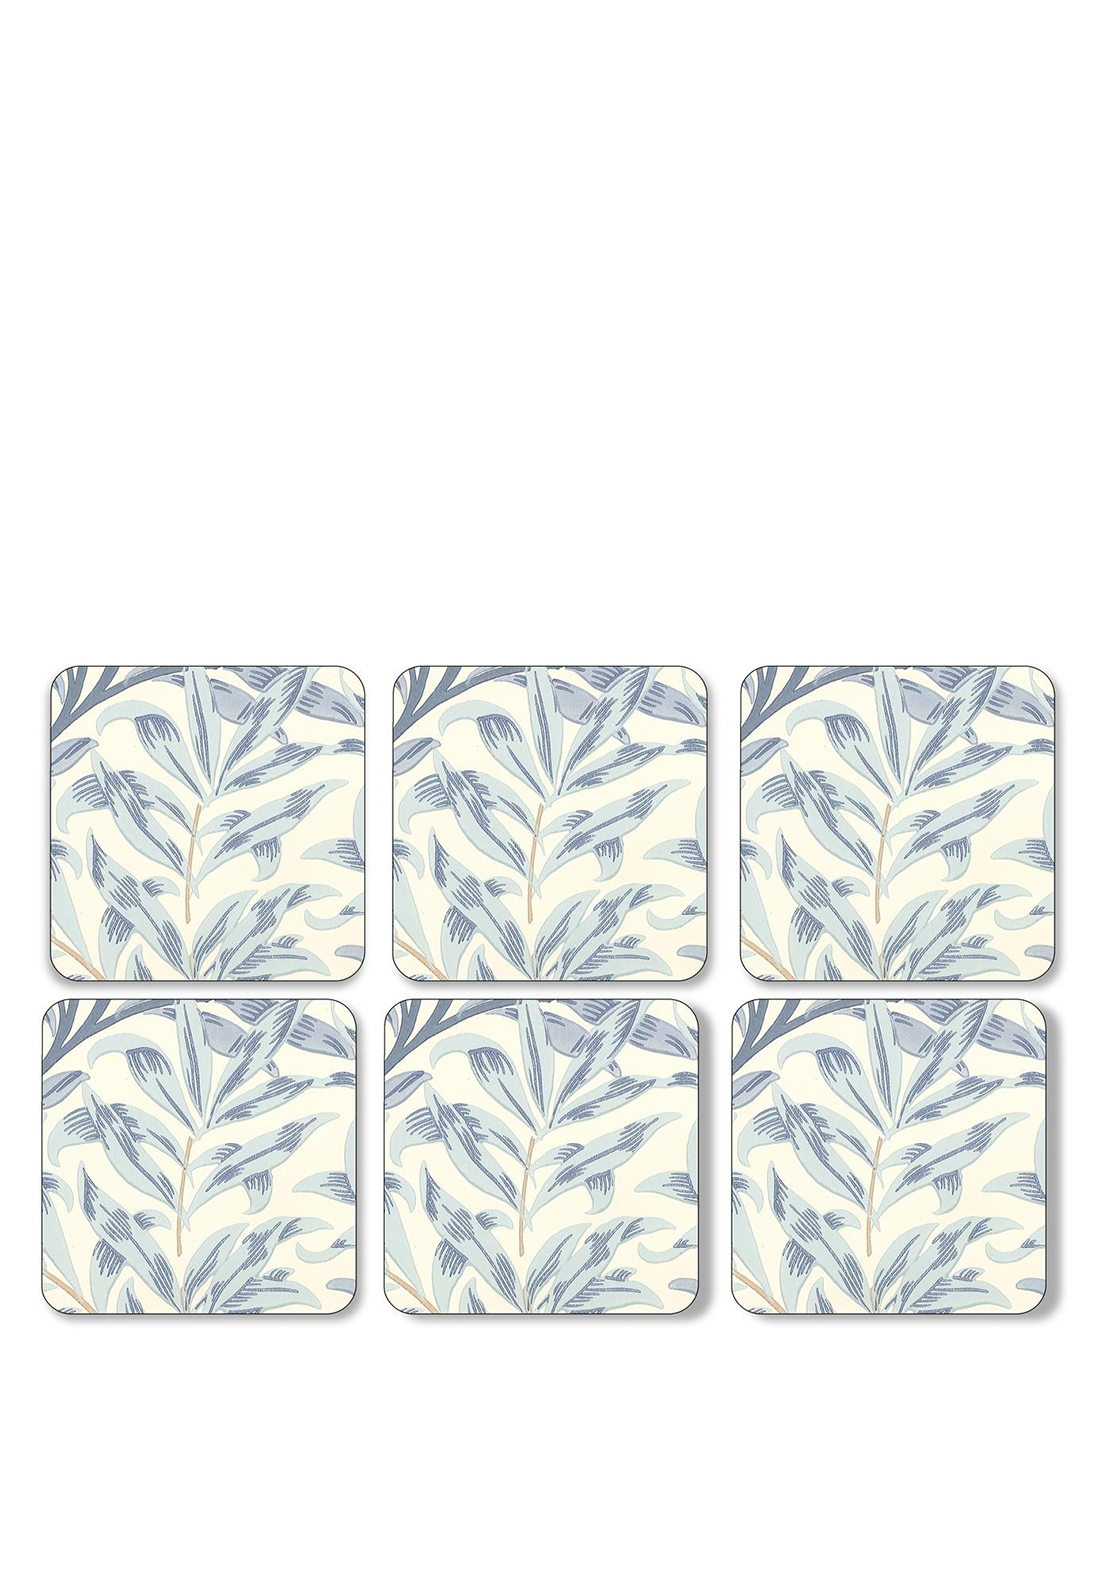 Pimpernel Willow Bough Blue Set of 6 Coasters